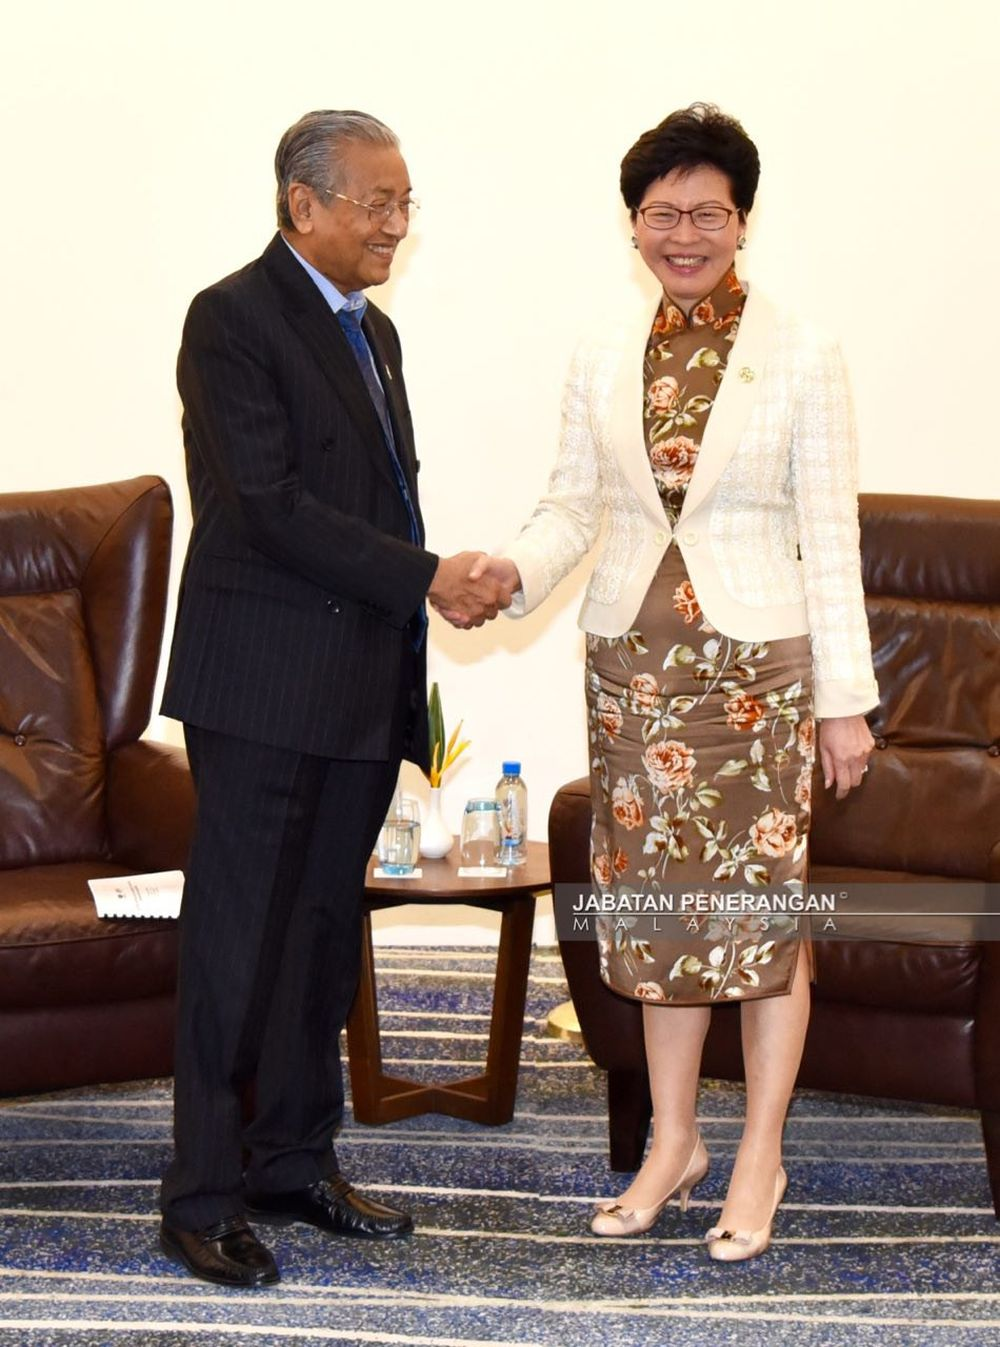 Tun Dr Mahathir Mohamad (left) shakes hands with Hong Kong chief executive Carrie Lam (right) at the Apec 2018 Summit in Port Moresby November 17 2018. ― Picture courtesy of Information Department of Malaysia